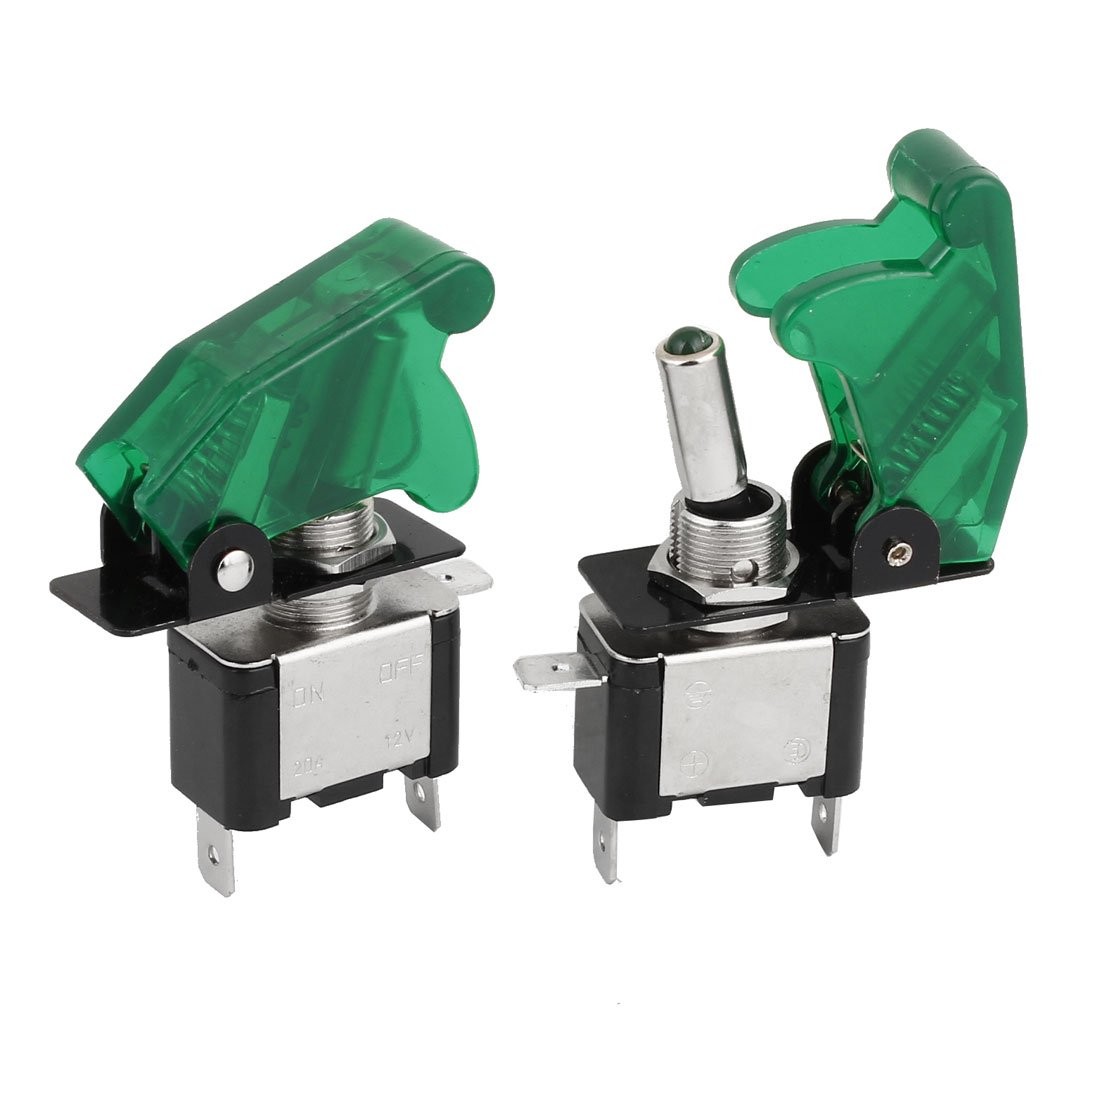 uxcell 2Pcs Green Lighted Toggle Switch 12V 20A ON Off Car Boat ATV Airplane